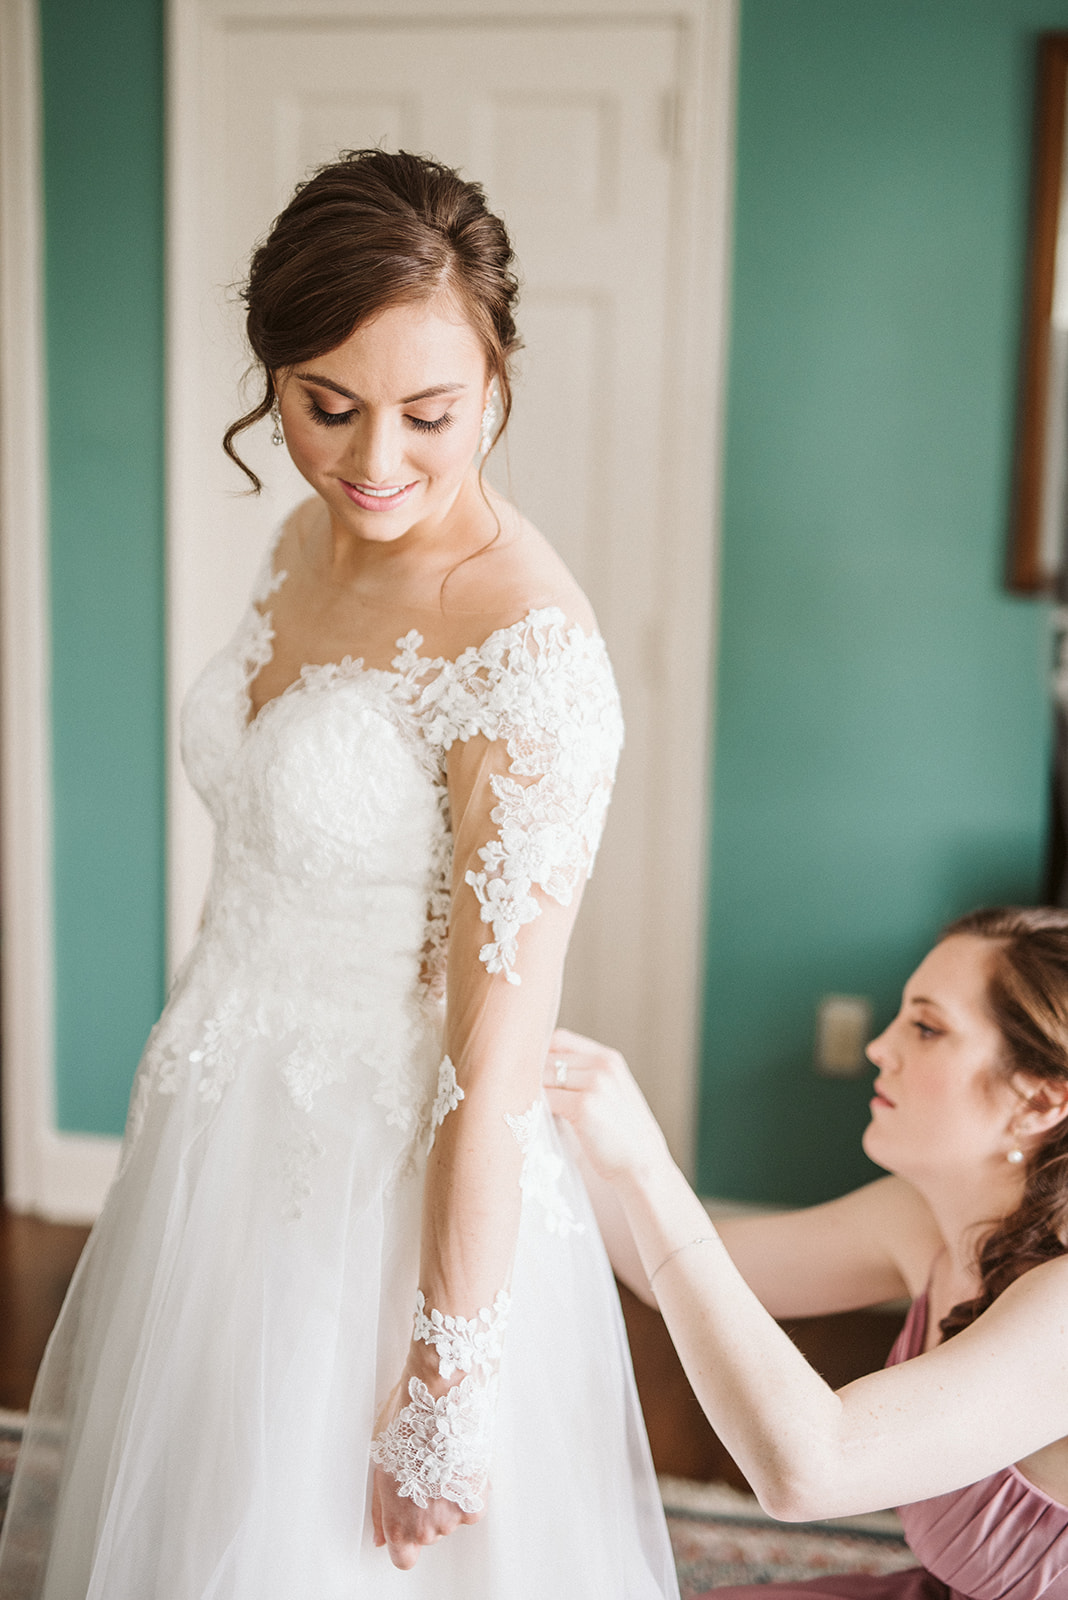 Bride getting into her dress within the bridal suite of Drumore Estate located in Pequea, Pennsylvania.